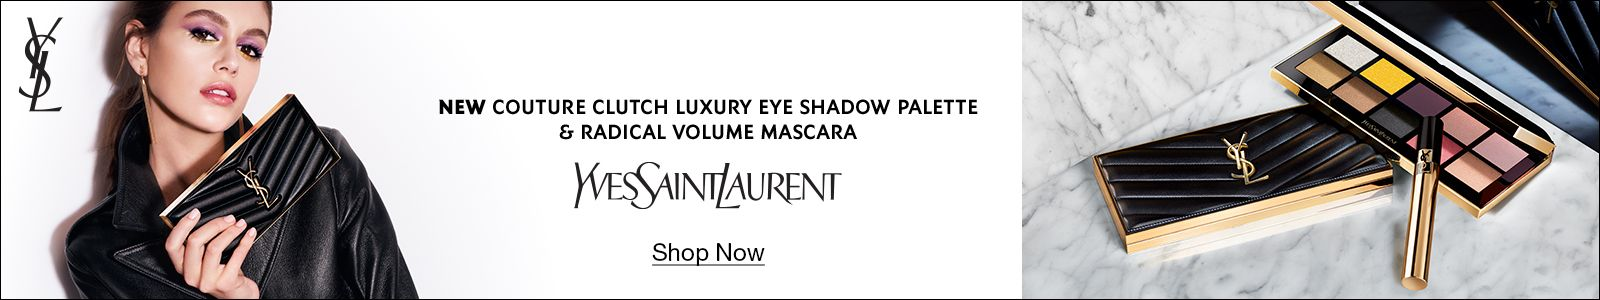 New Couture Clutch Luxury Eye Shadow Palette and Radical Volume Mascara, Yves Saint Laurent, Shop Now